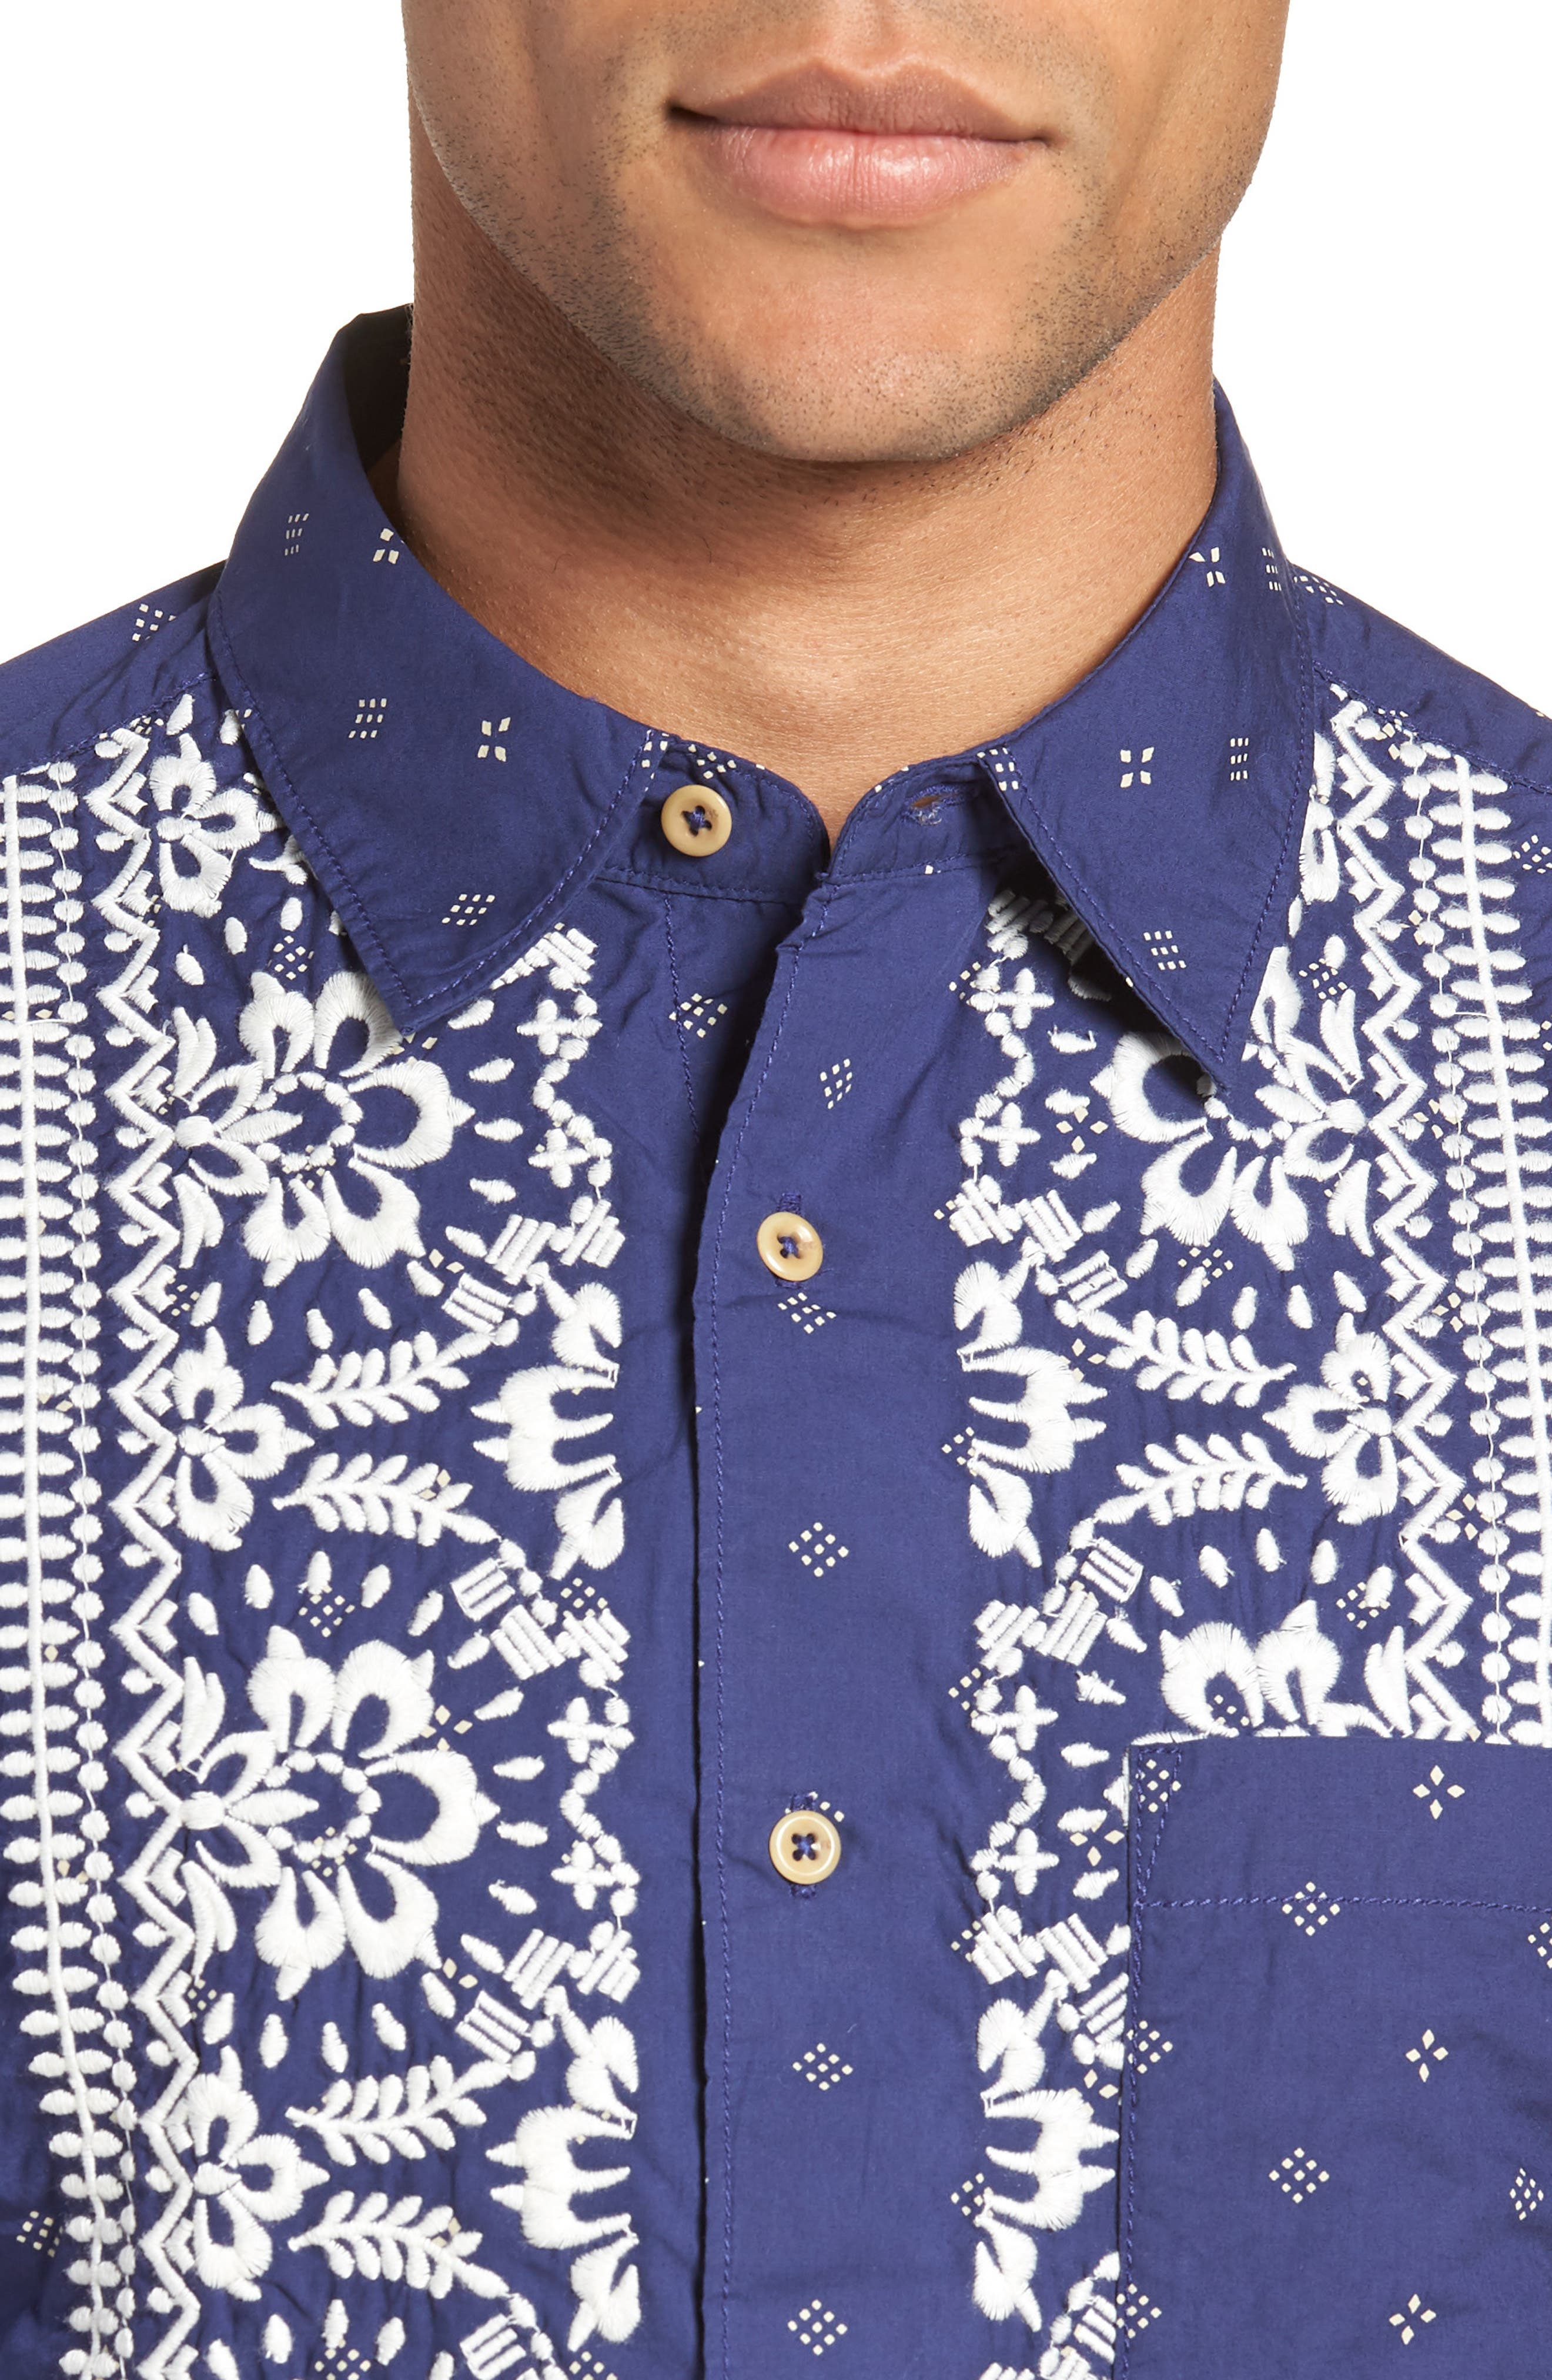 Iki Lawn Embroidered Shirt,                             Alternate thumbnail 2, color,                             Patriot Blue Turtle Dove